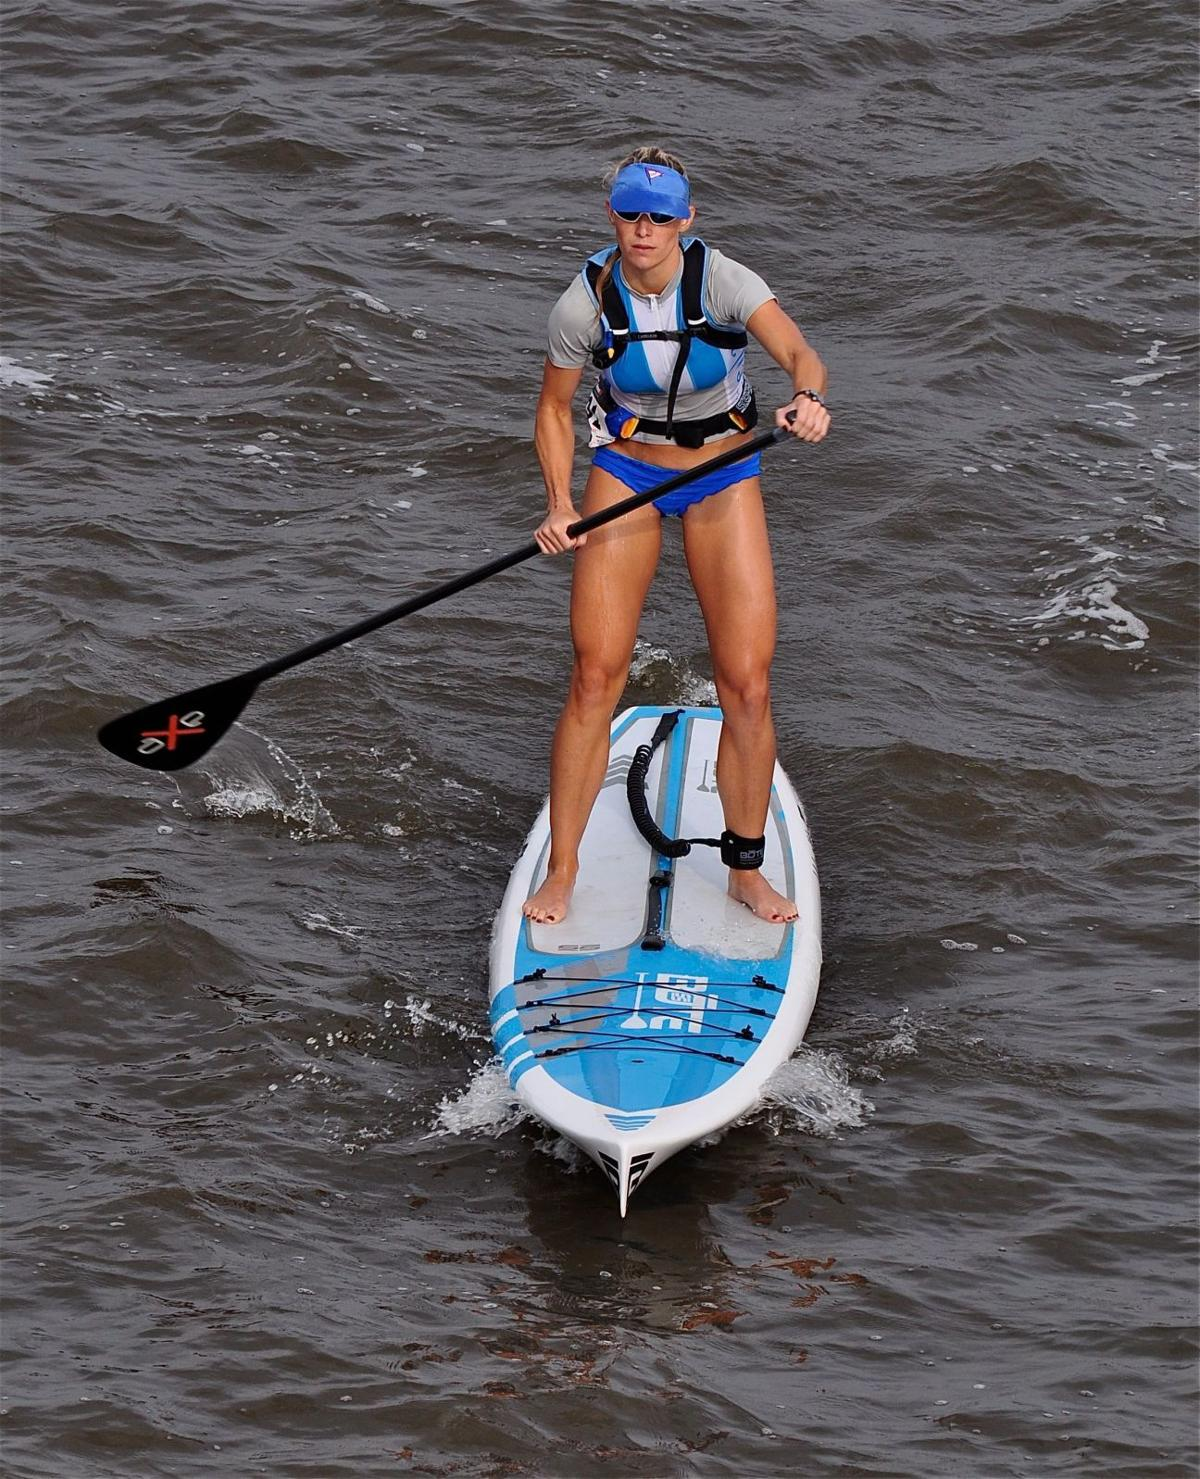 Summer over? Not yet, as Water SportsFest starts